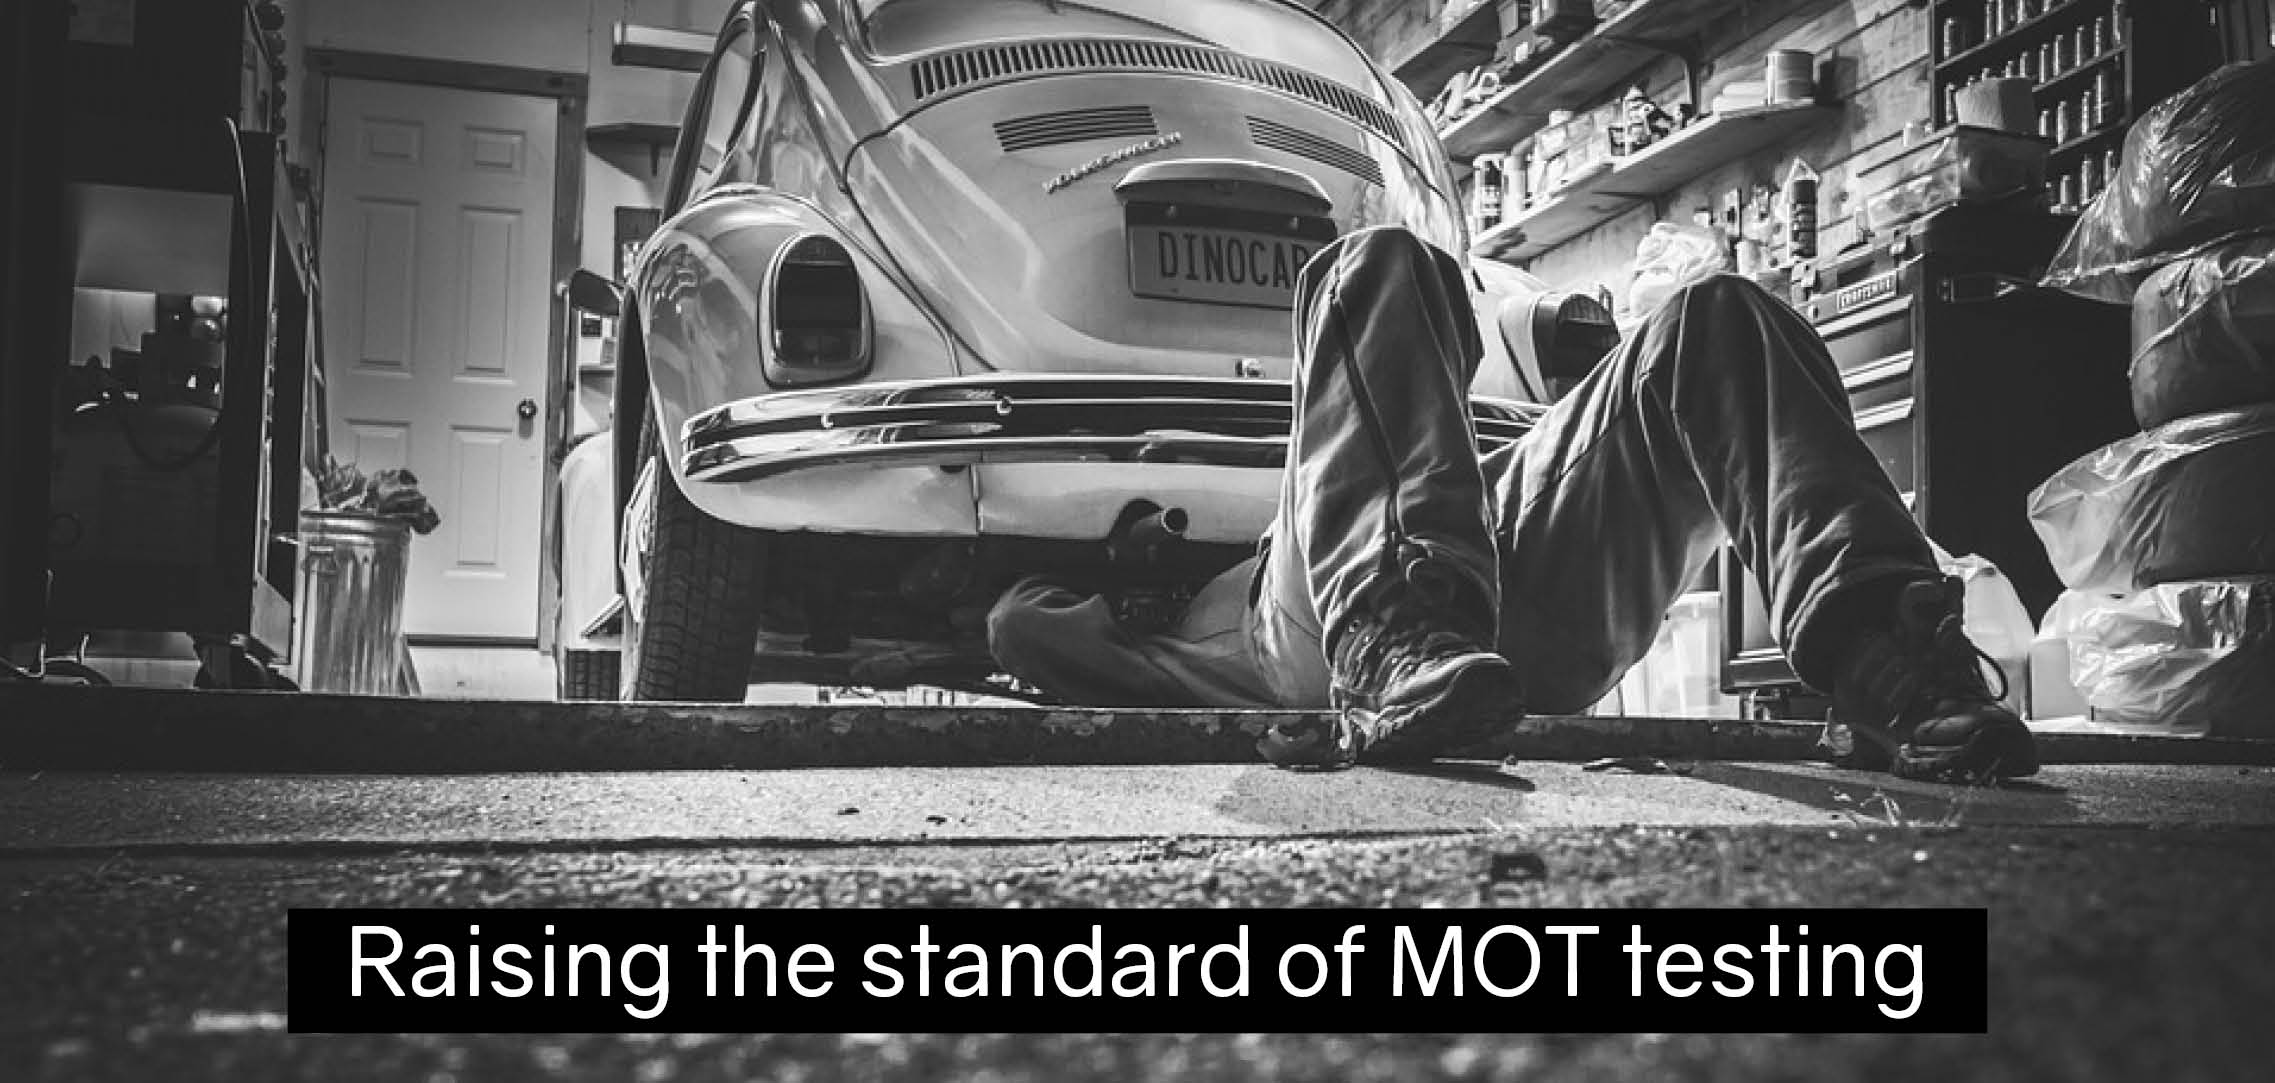 Raising the standard of MOT testing